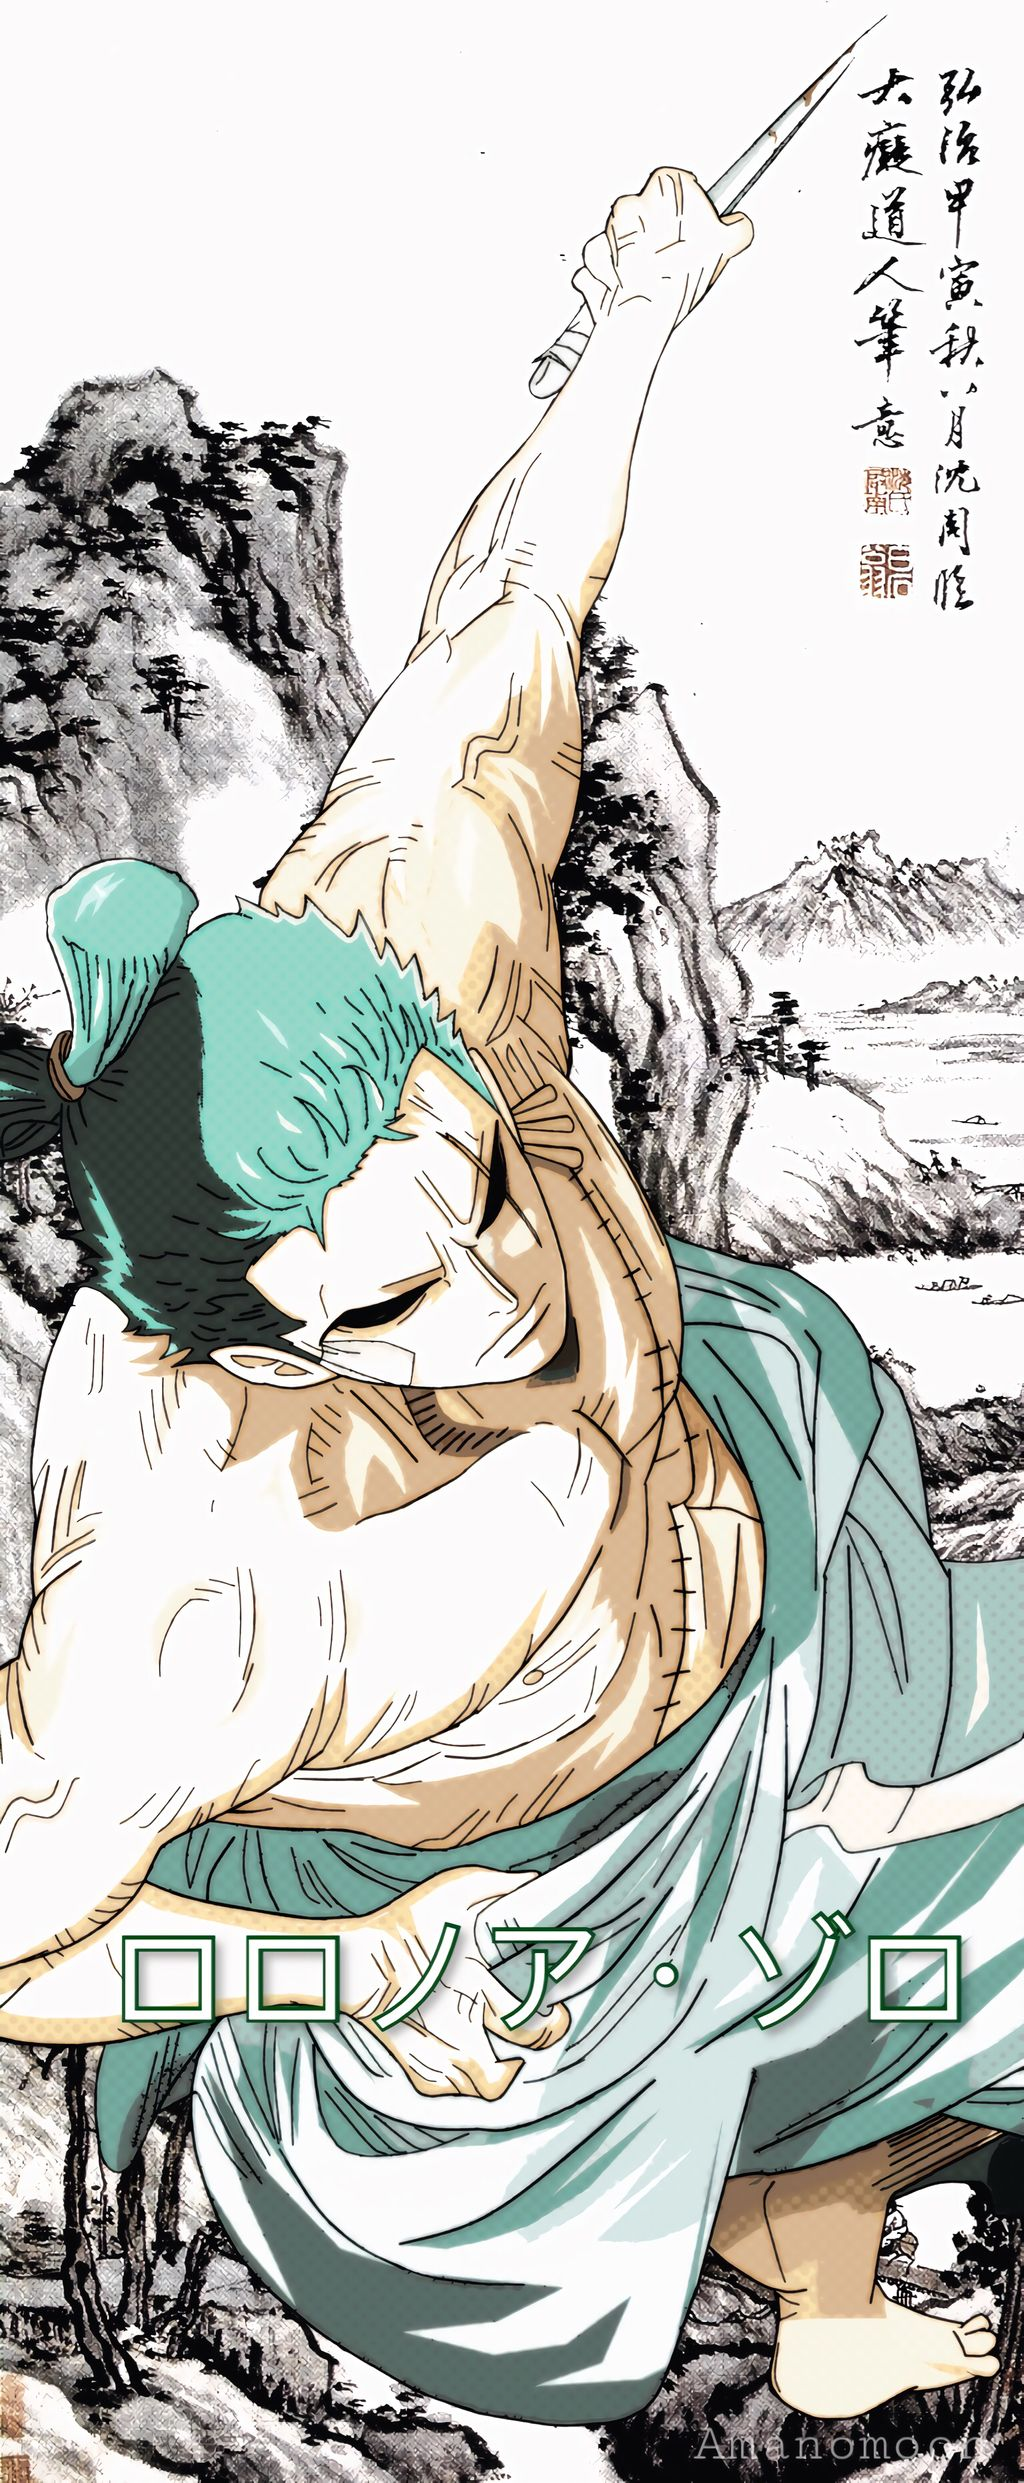 Zoro One Piece Wallpaper Posted By Sarah Sellers